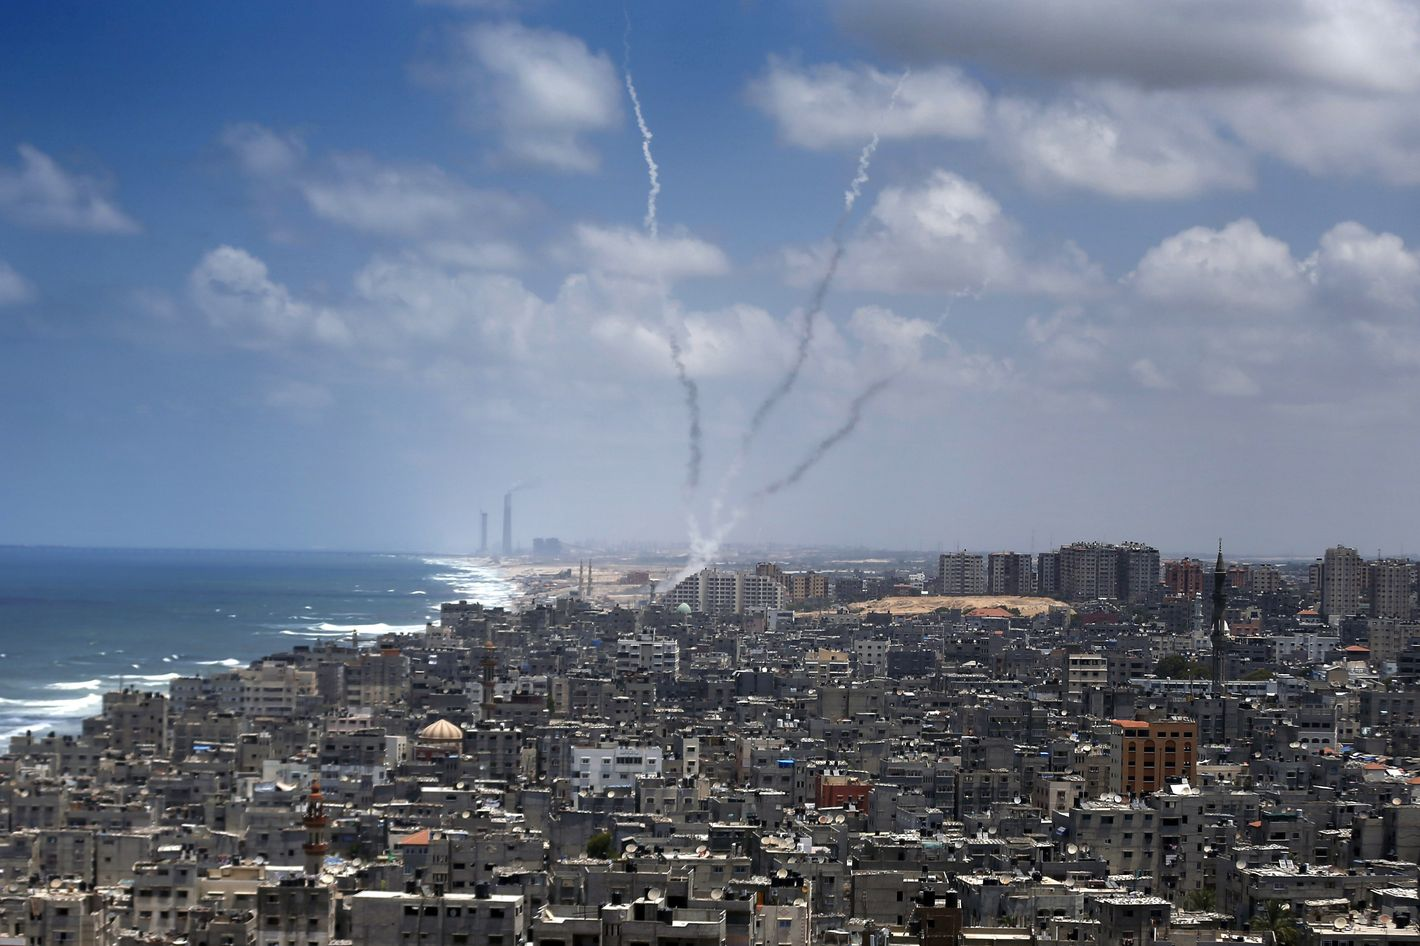 """Smoke from rockets fired from Gaza City are seen after being launched toward Israel, on July 15, 2014. US Secretary of State John Kerry  warned of the """"great risks"""" that the violence between Israel and the Gaza Strip could spiral out of control.   AFP PHOTO / THOMAS COEX        (Photo credit should read THOMAS COEX/AFP/Getty Images)"""